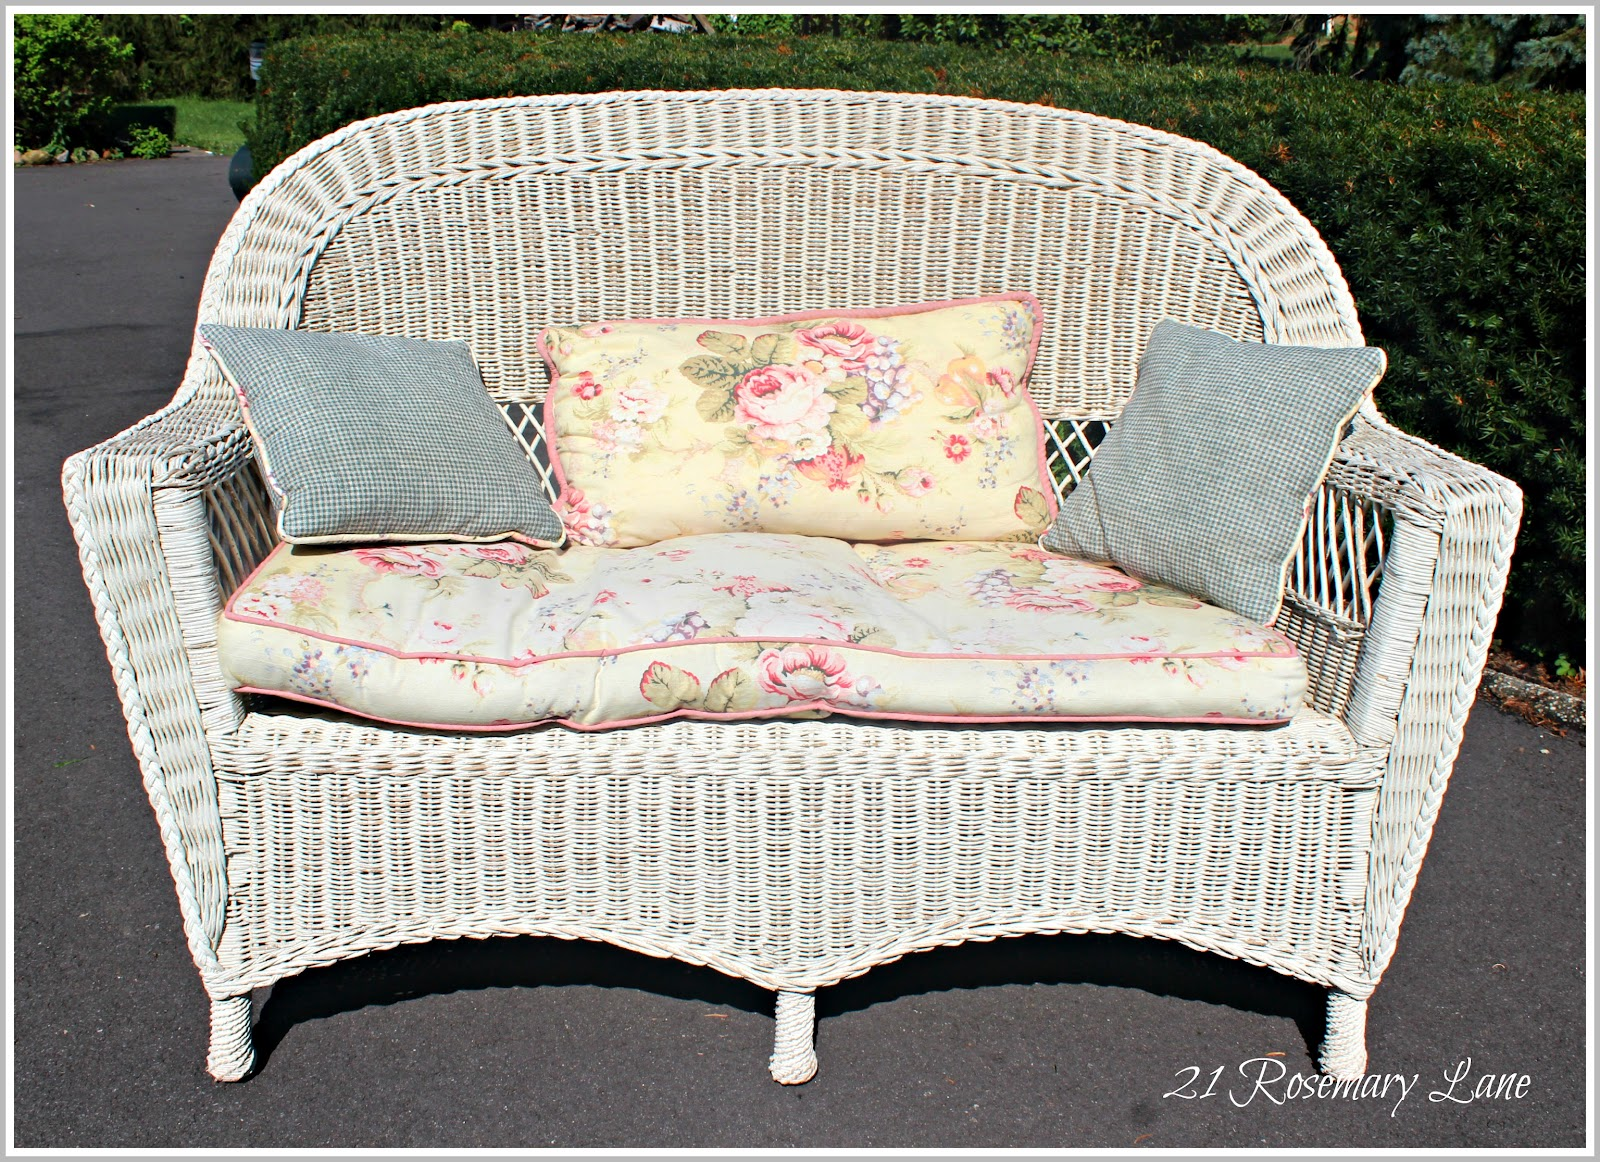 hilfiger pdx loveseat wicker outdoor cushions tommy oceanside with